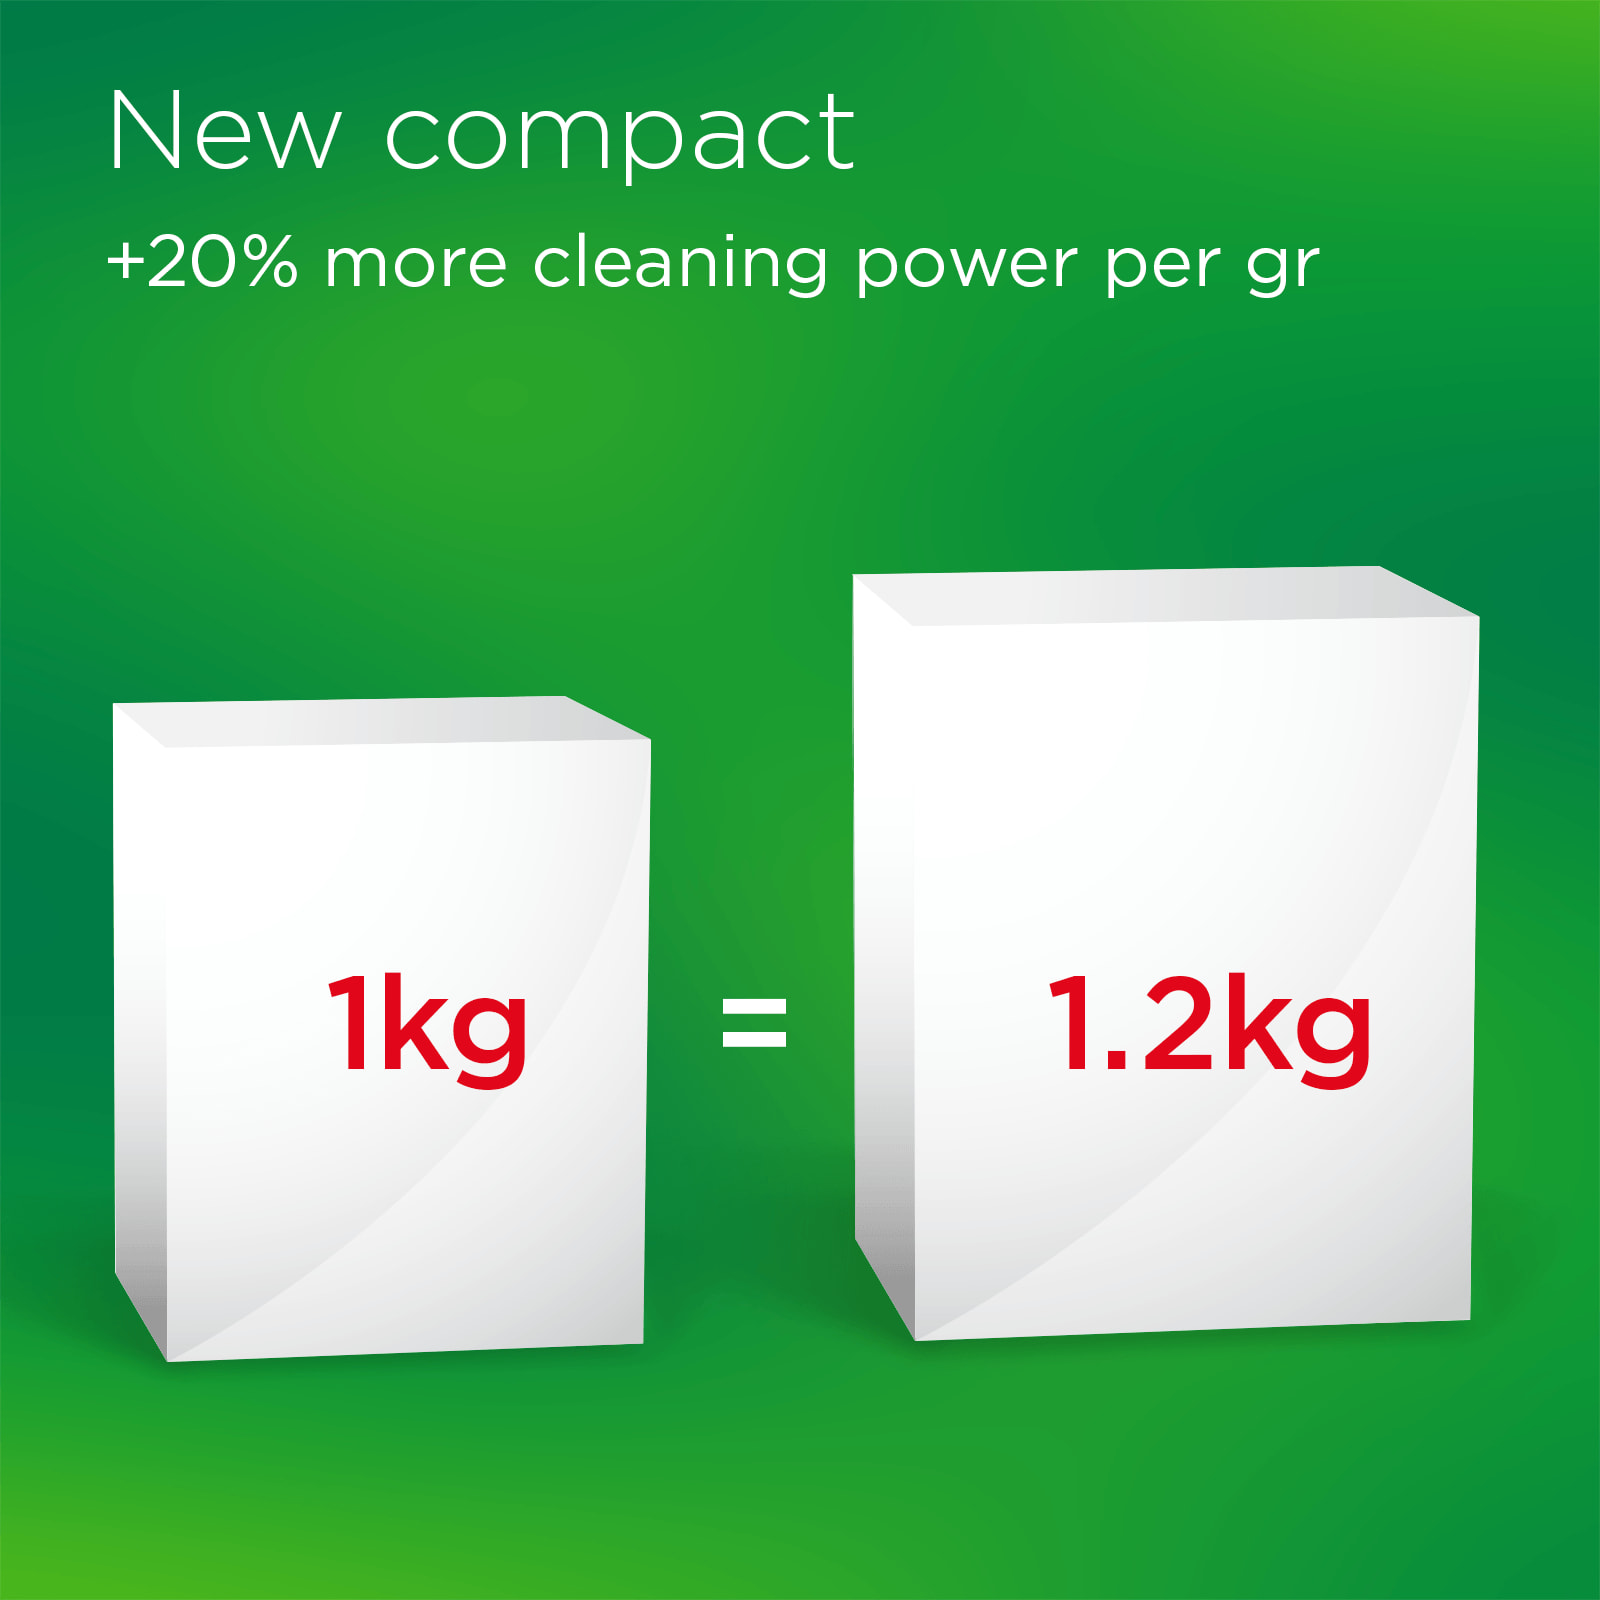 New Compact +20% more cleaning power per gr